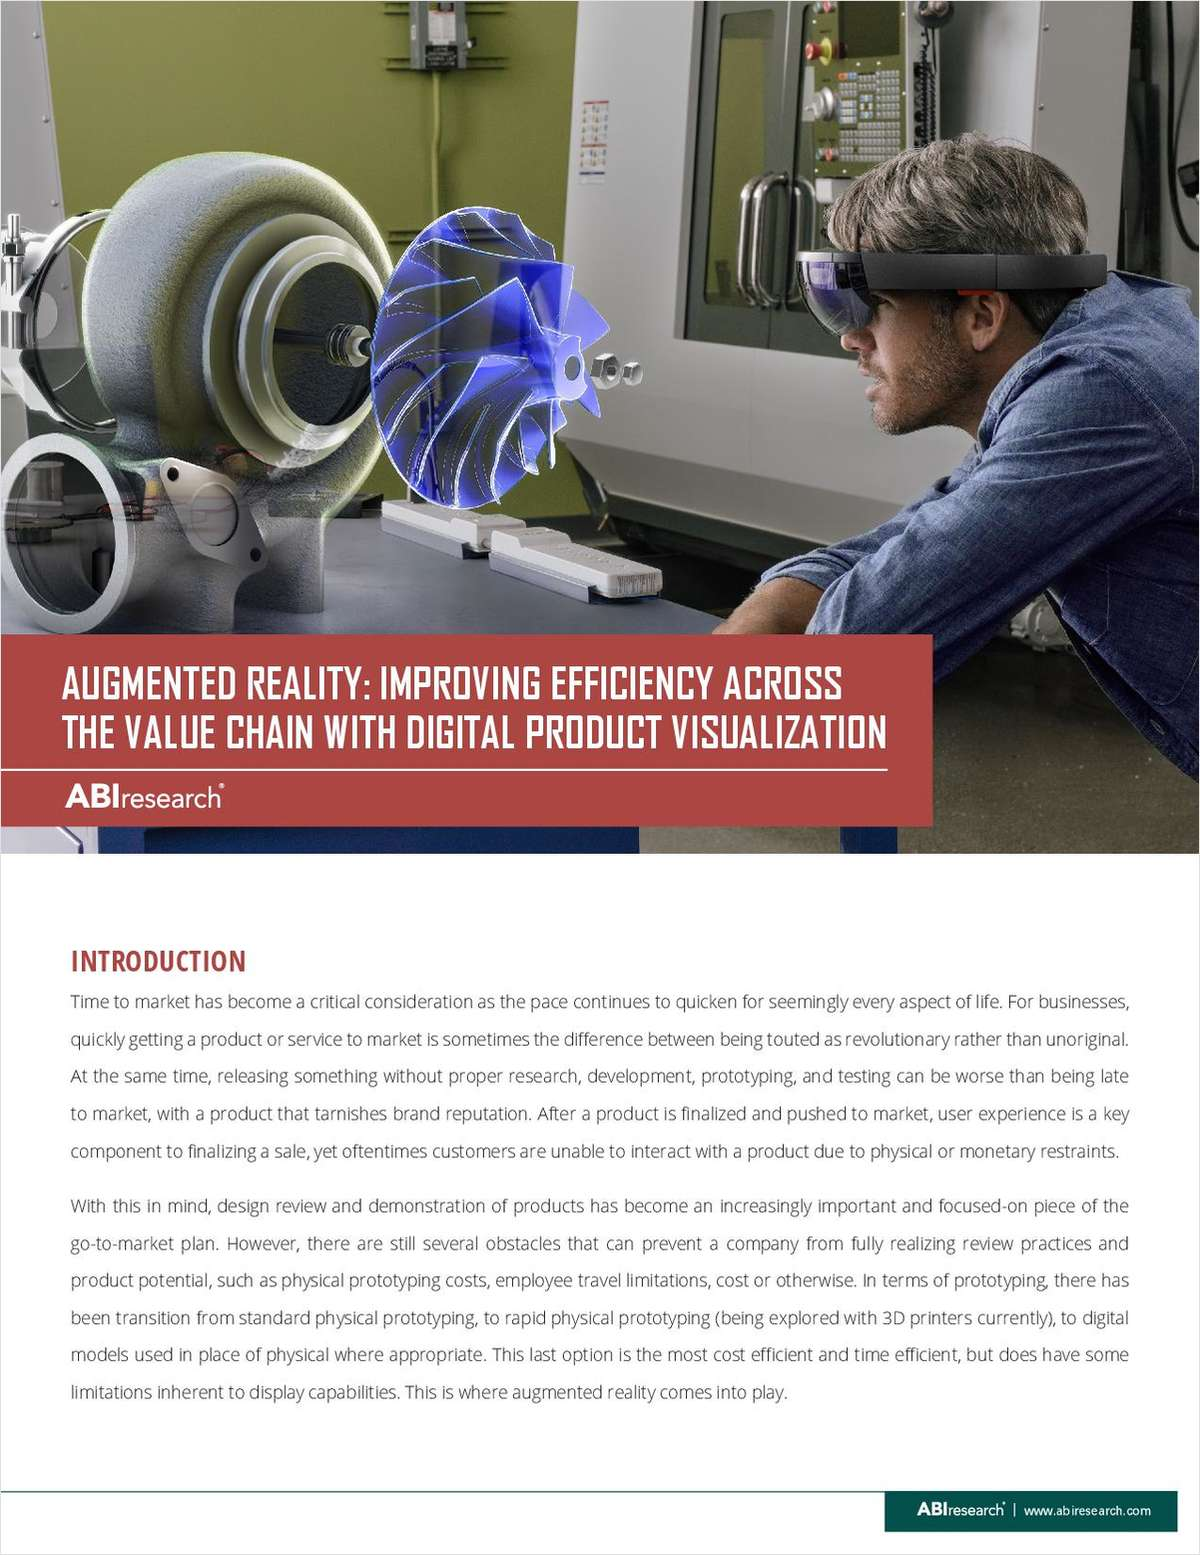 Improving Efficiency Across the Value Chain with Digital Product Visualization